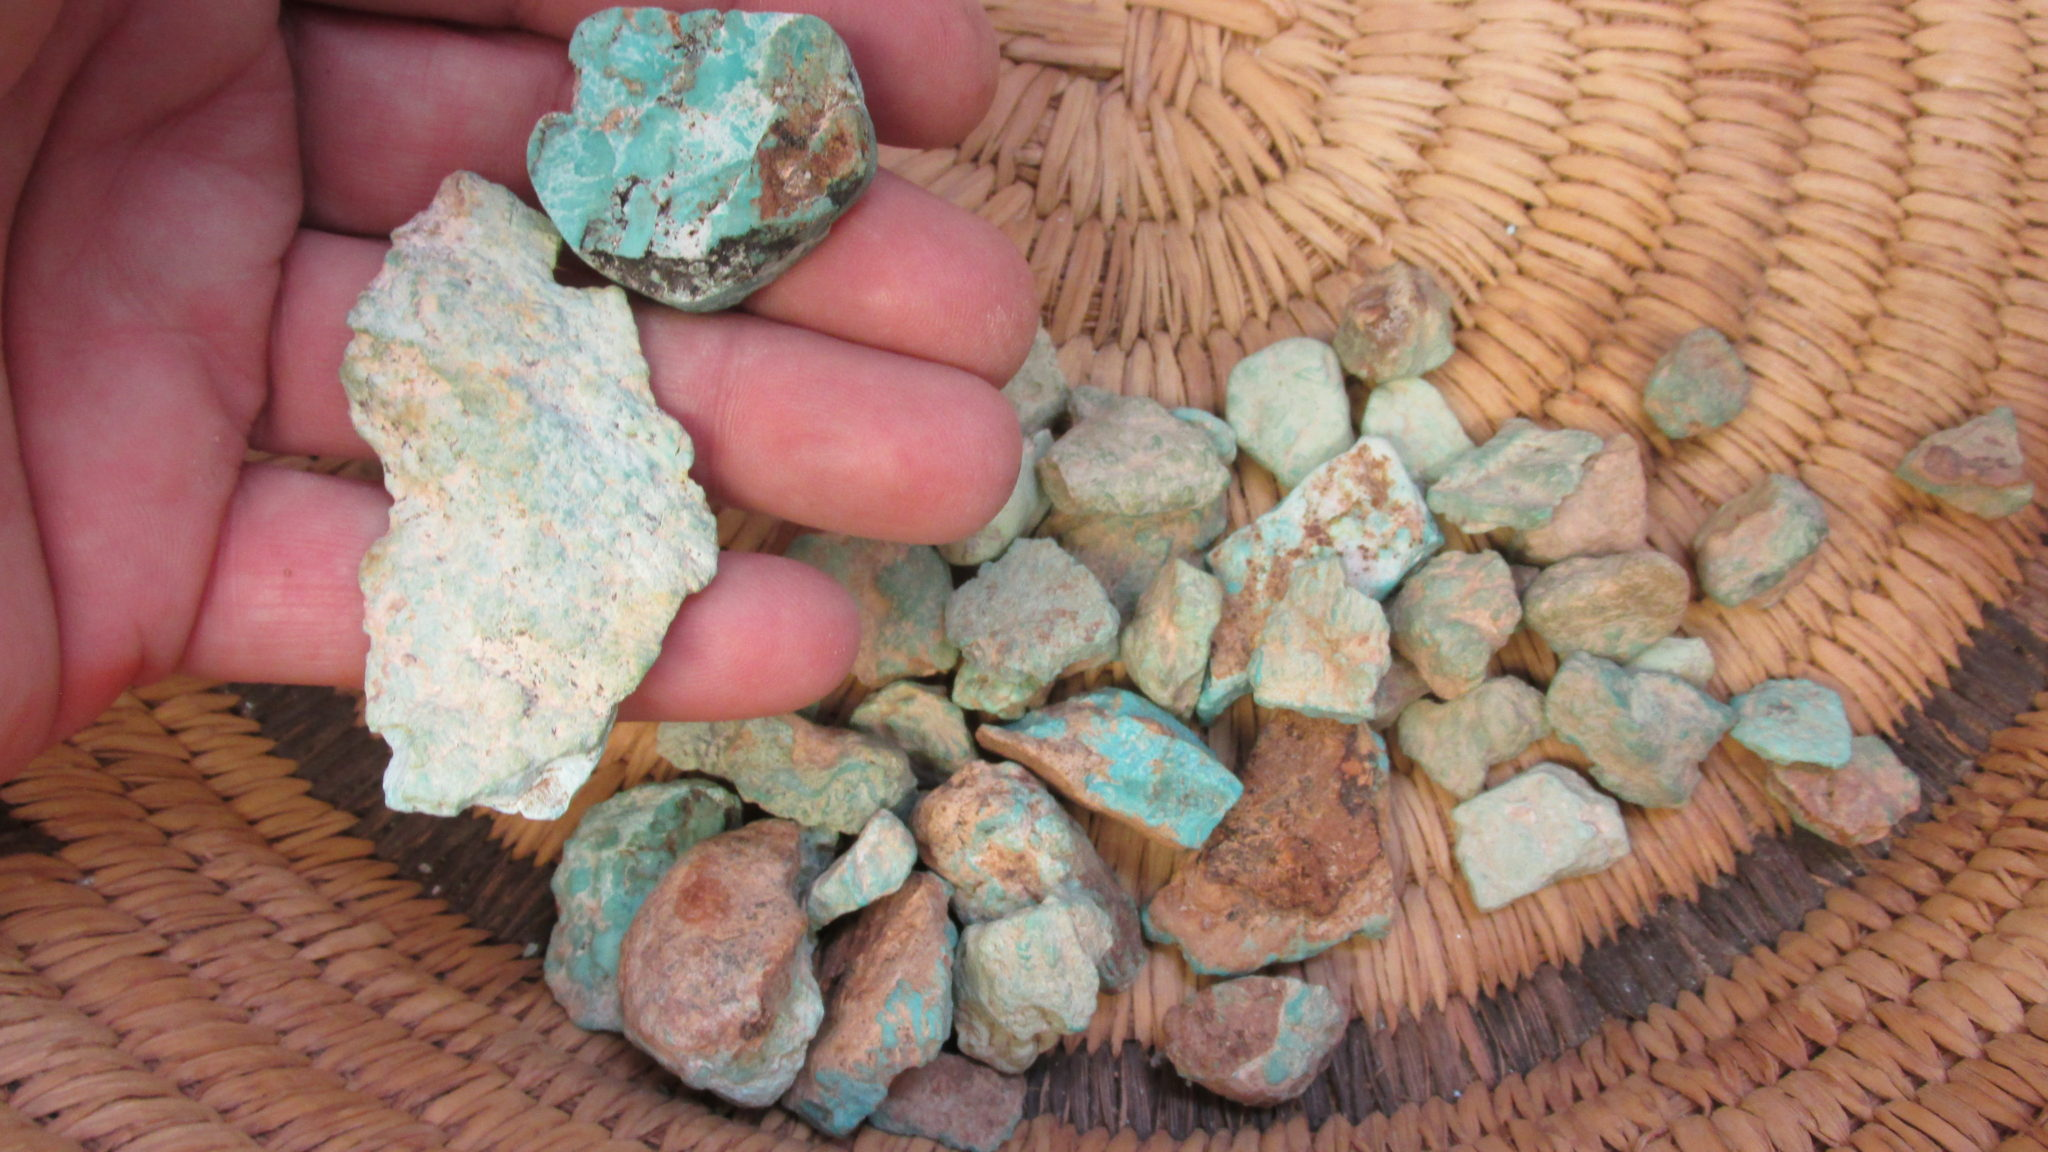 Cripple Creek Turquoise from Colorado